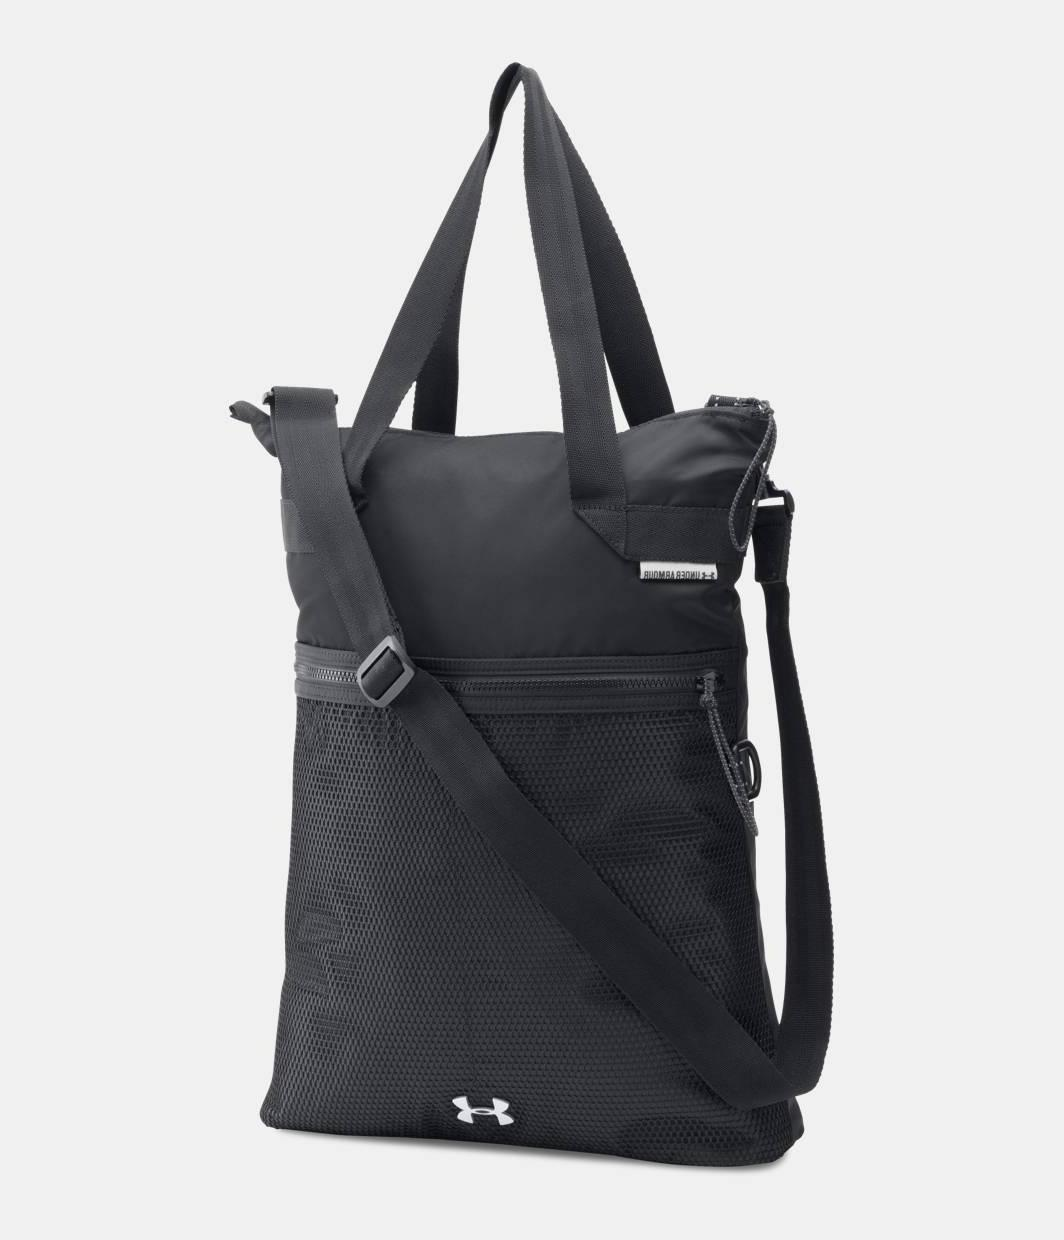 fc636ea7bf Under armour duffle bag small pink duffle bag jpg 1064x1240 Belk under  armour backpacks for girls